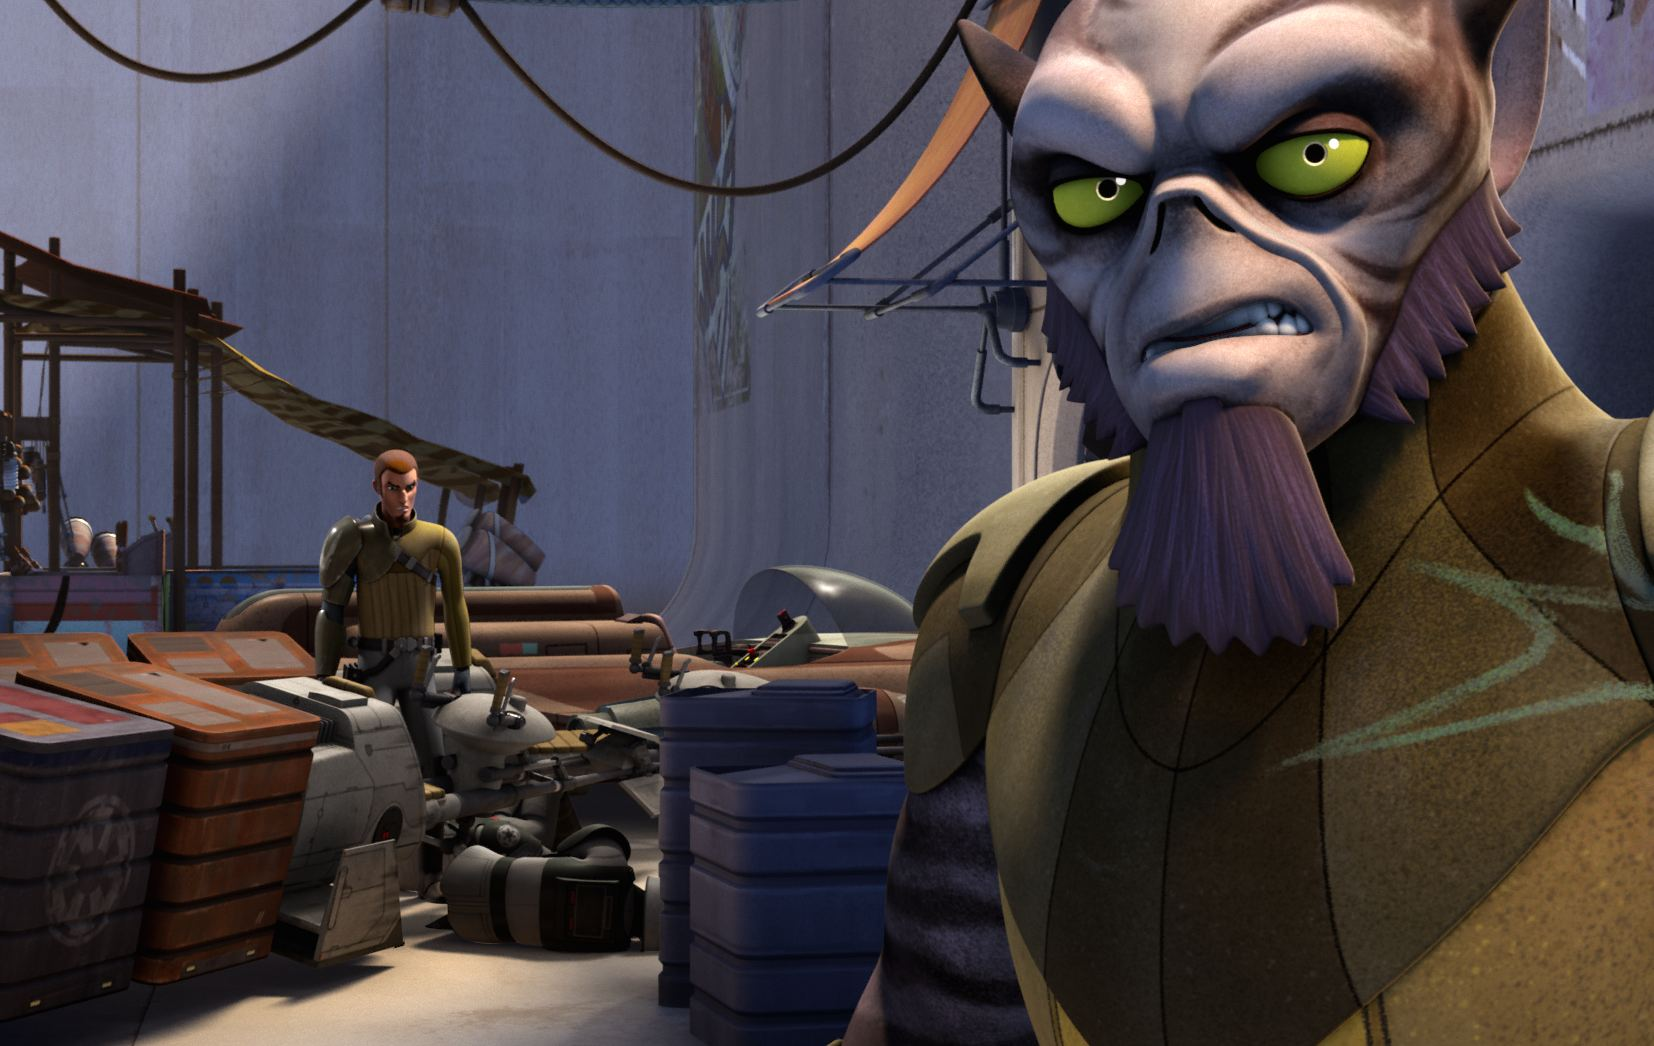 star wars rebels la s233rie introduira des 233l233ments de l